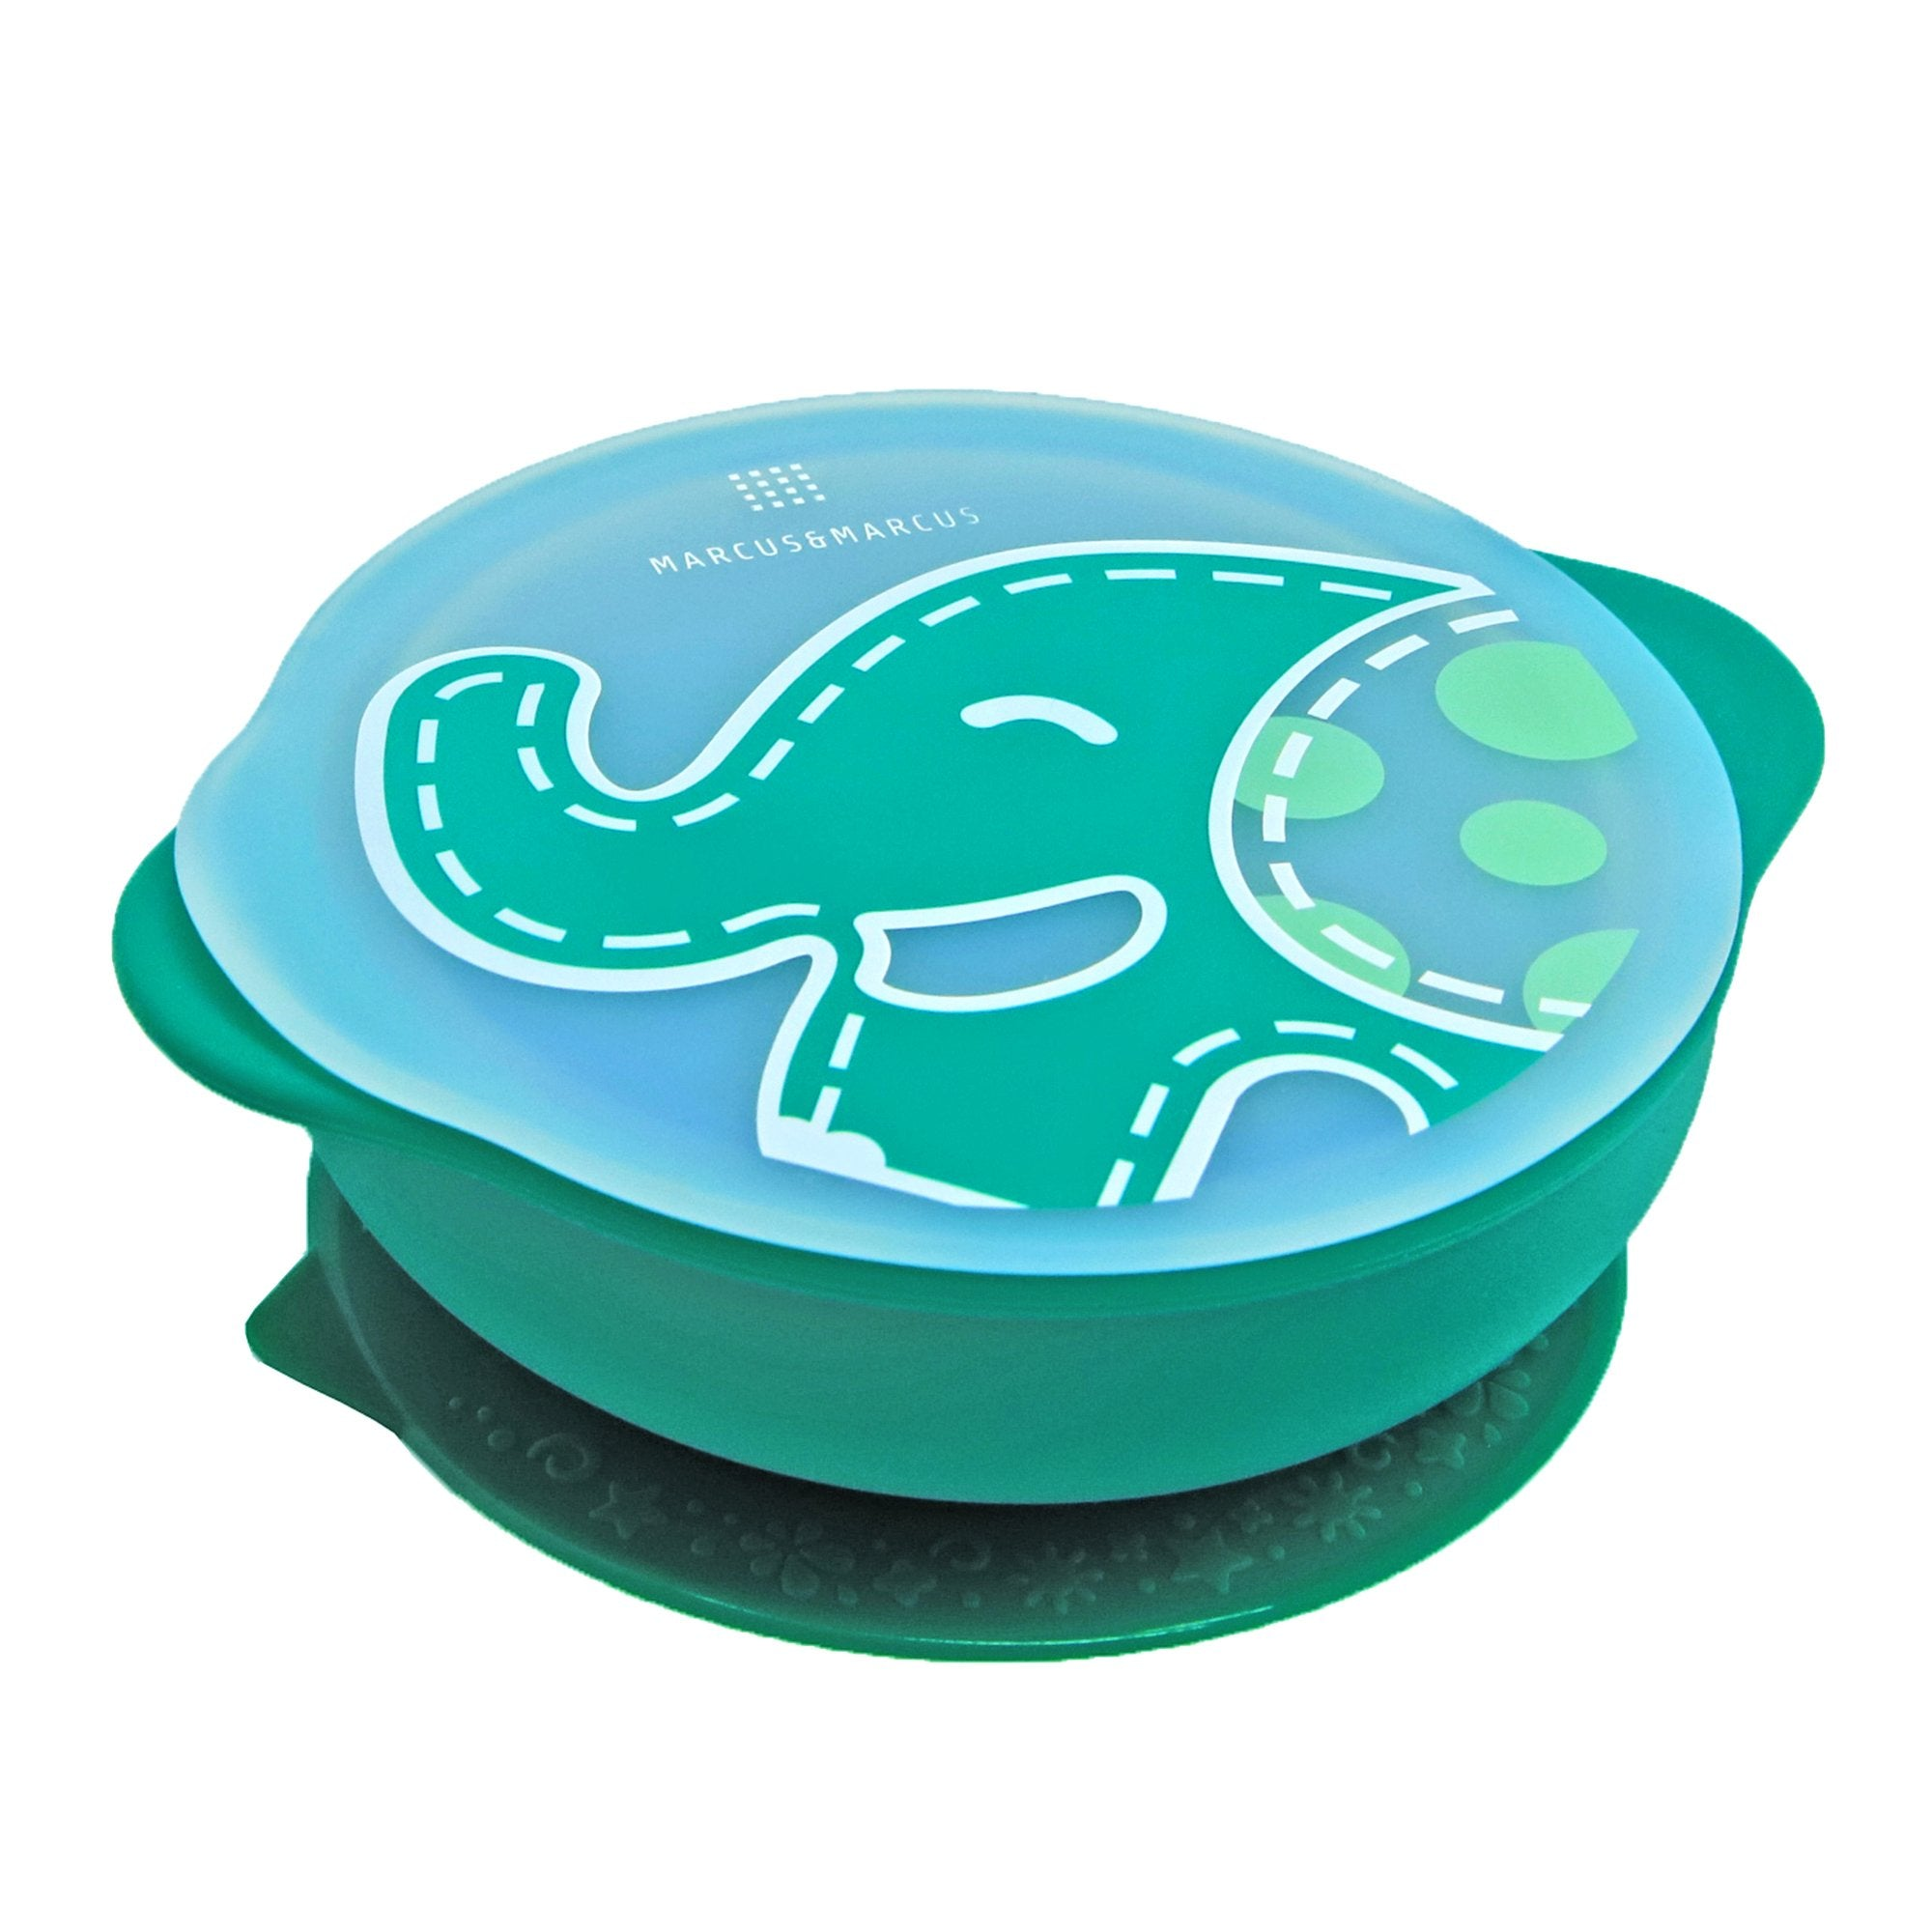 Marcus & Marcus Suction Bowl with Lid - Ollie